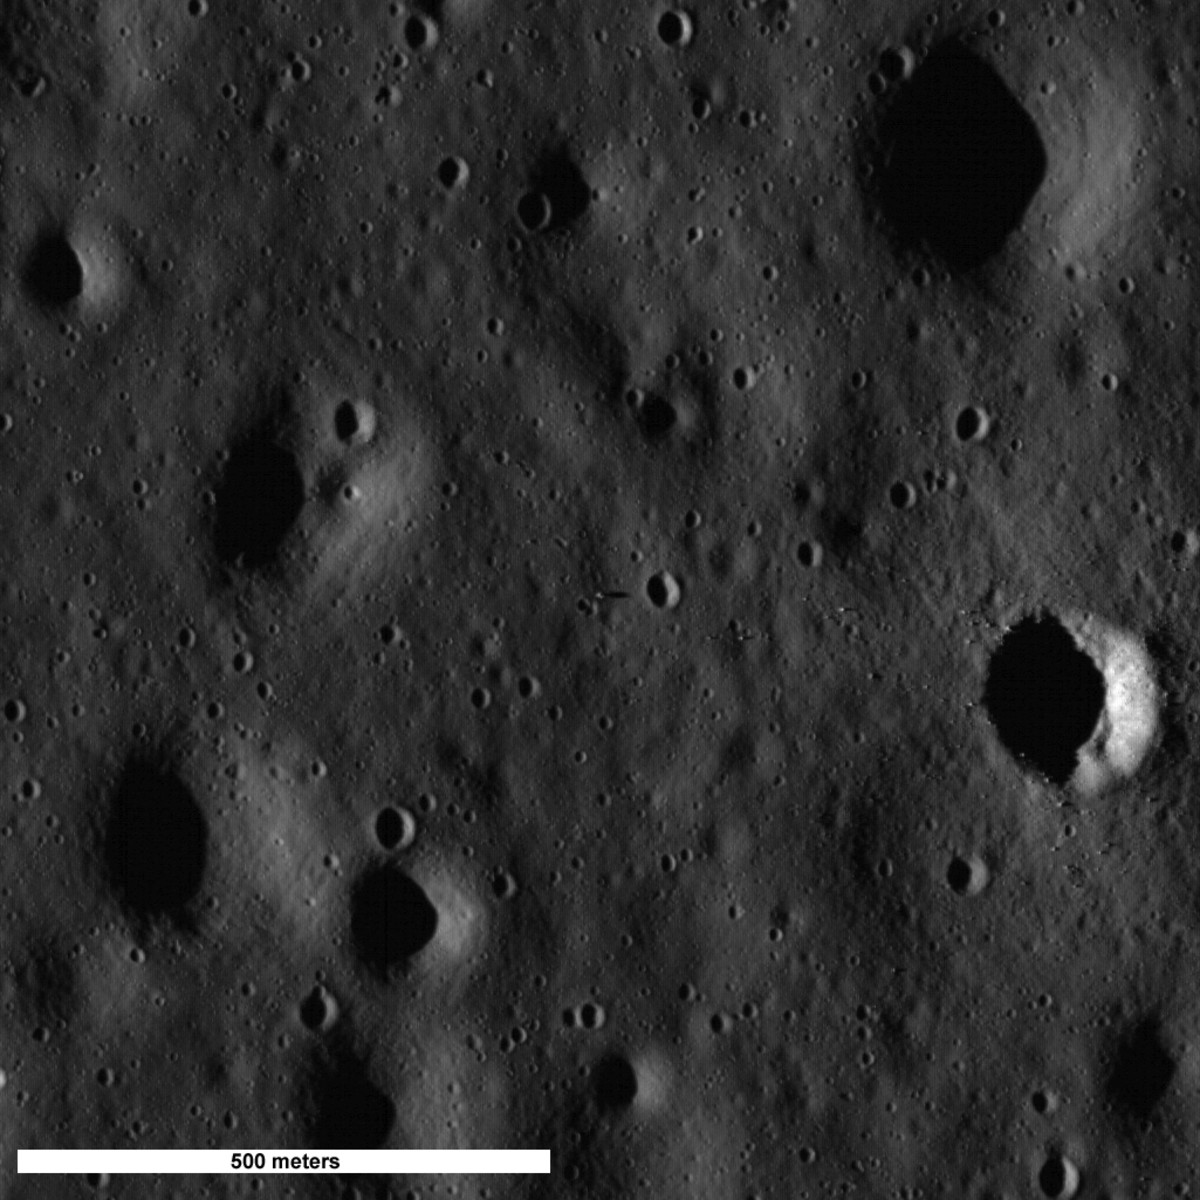 July 2009. First Image of Apollo 11 Site. It's tiny, but this was our first photo of the landing site since the astronauts left!